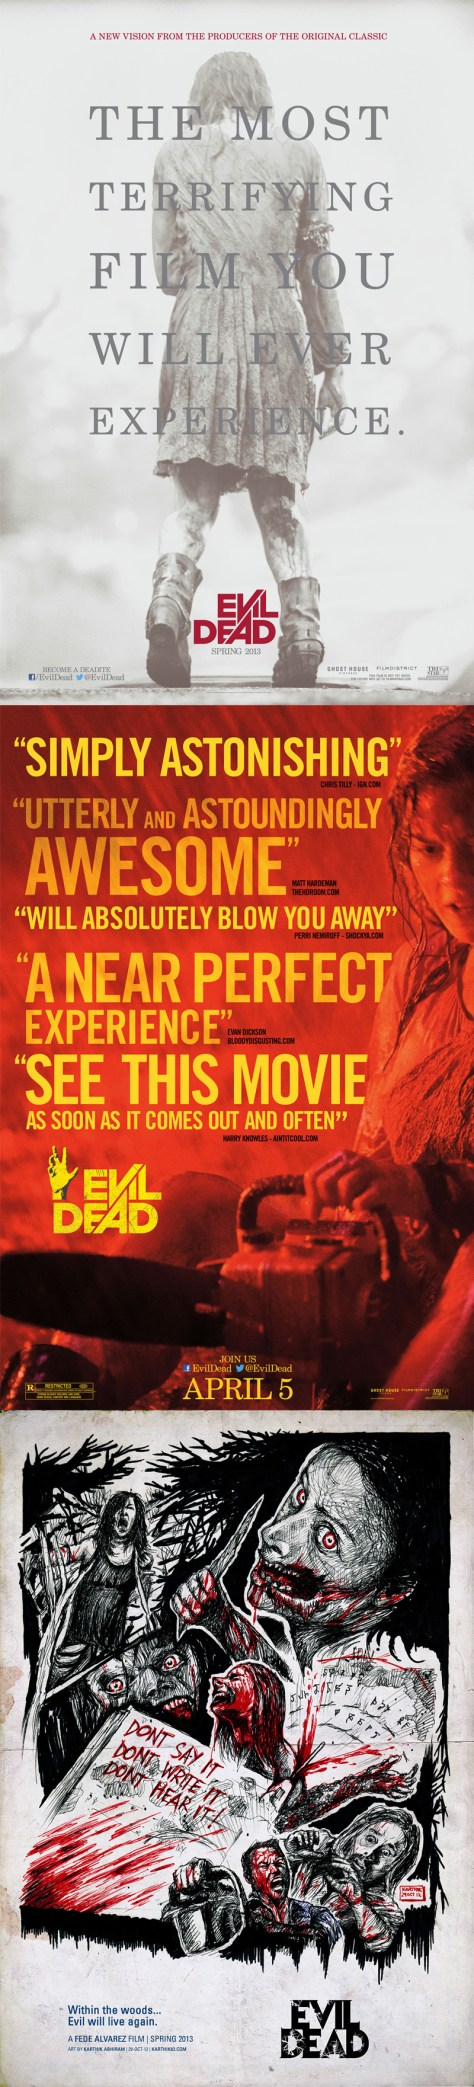 20130428-the-evil-dead-2013-02